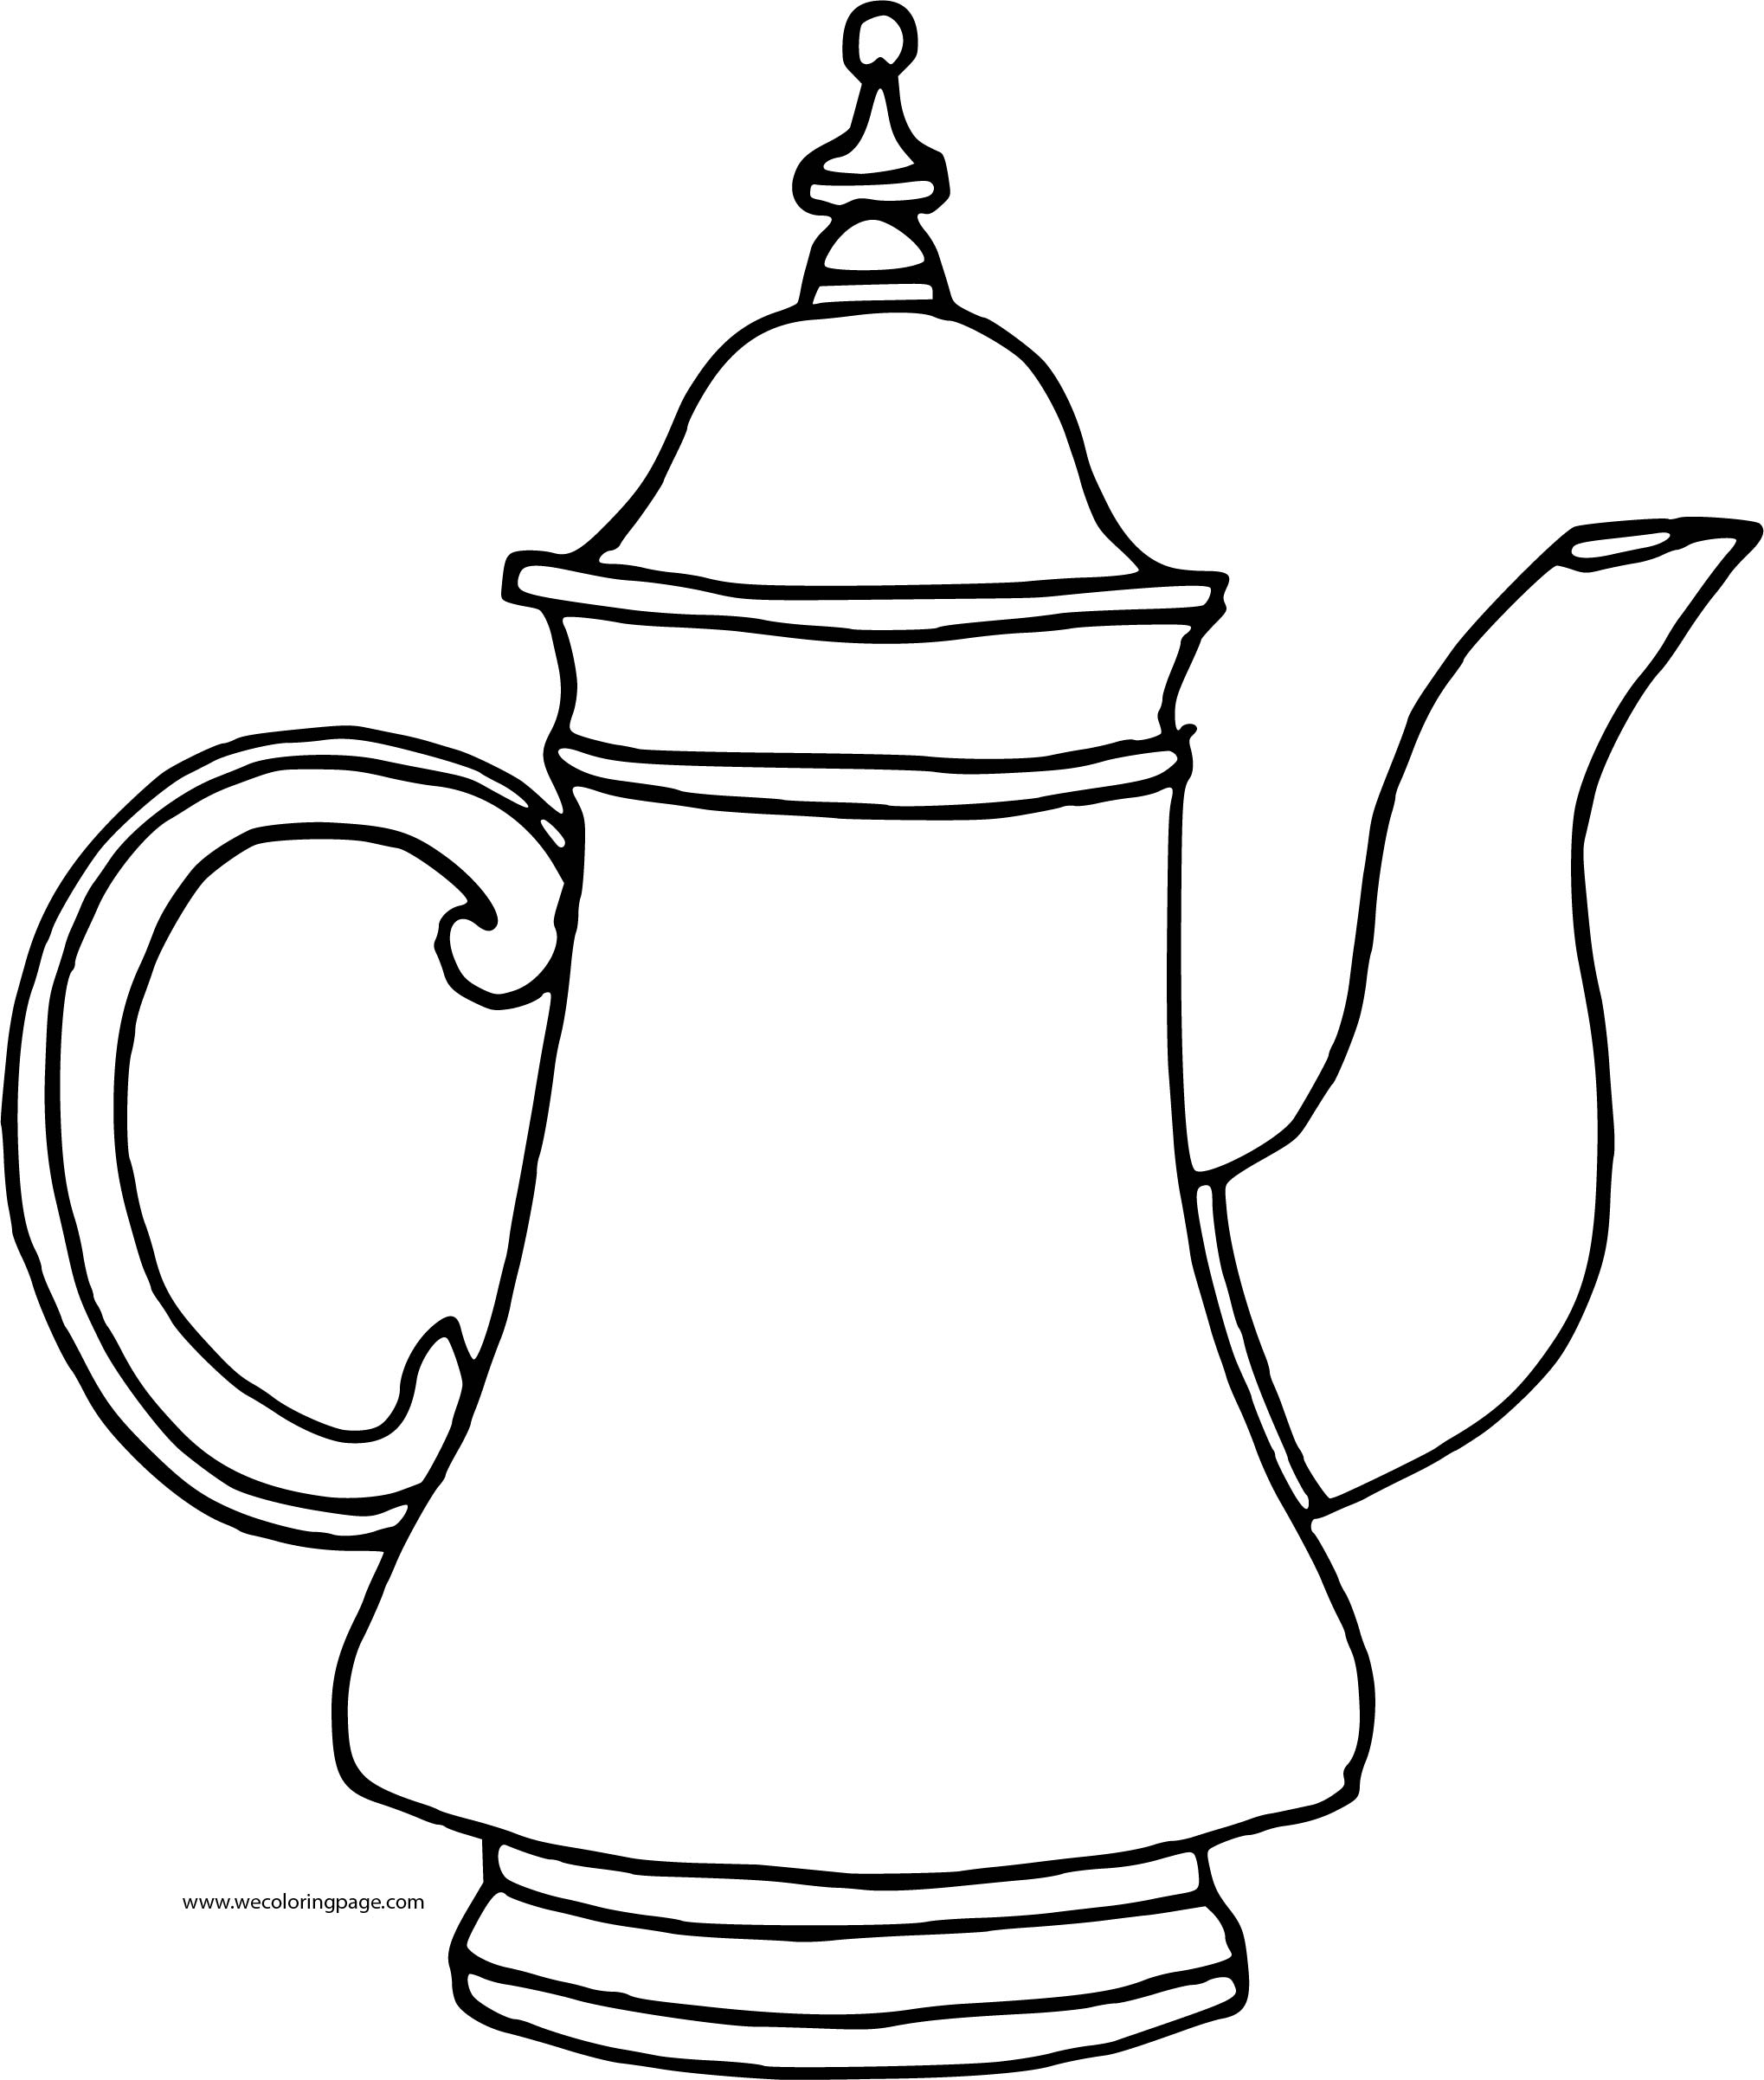 Teapot Tall Coloring Page